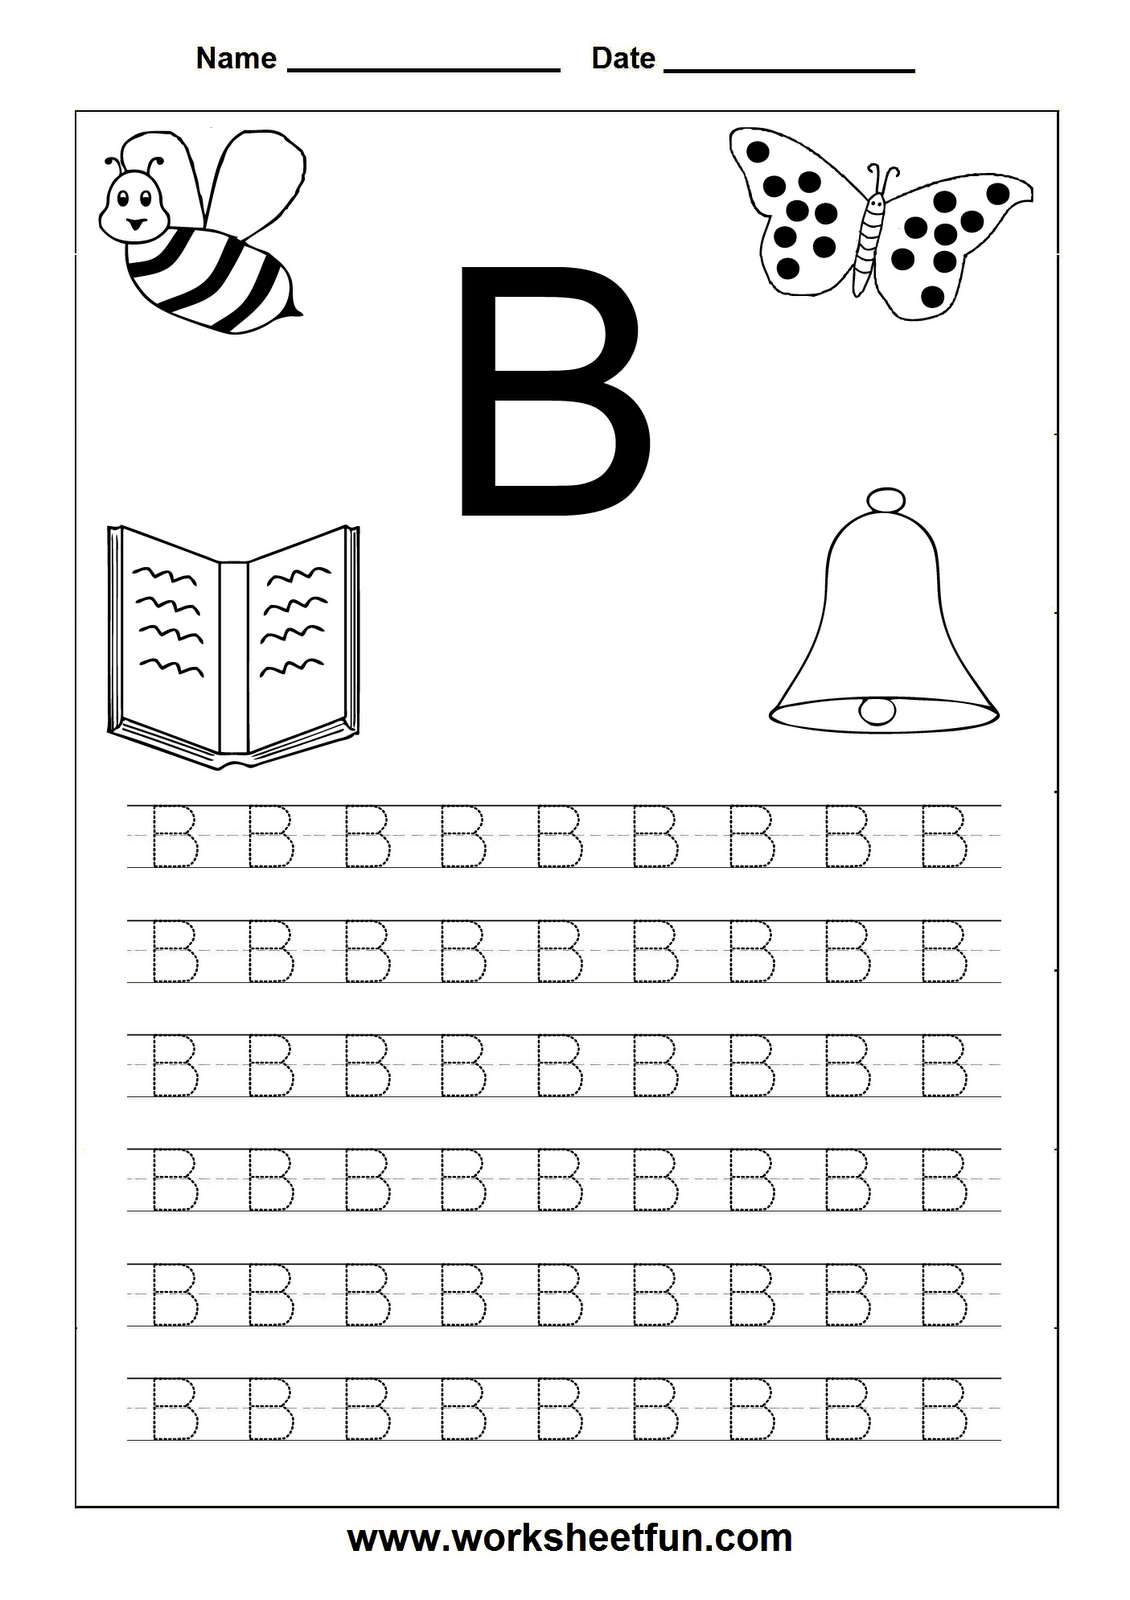 worksheet Letter A Worksheets For Kindergarten letter tracing worksheets for kindergarten capital and small letters alphabet tracing